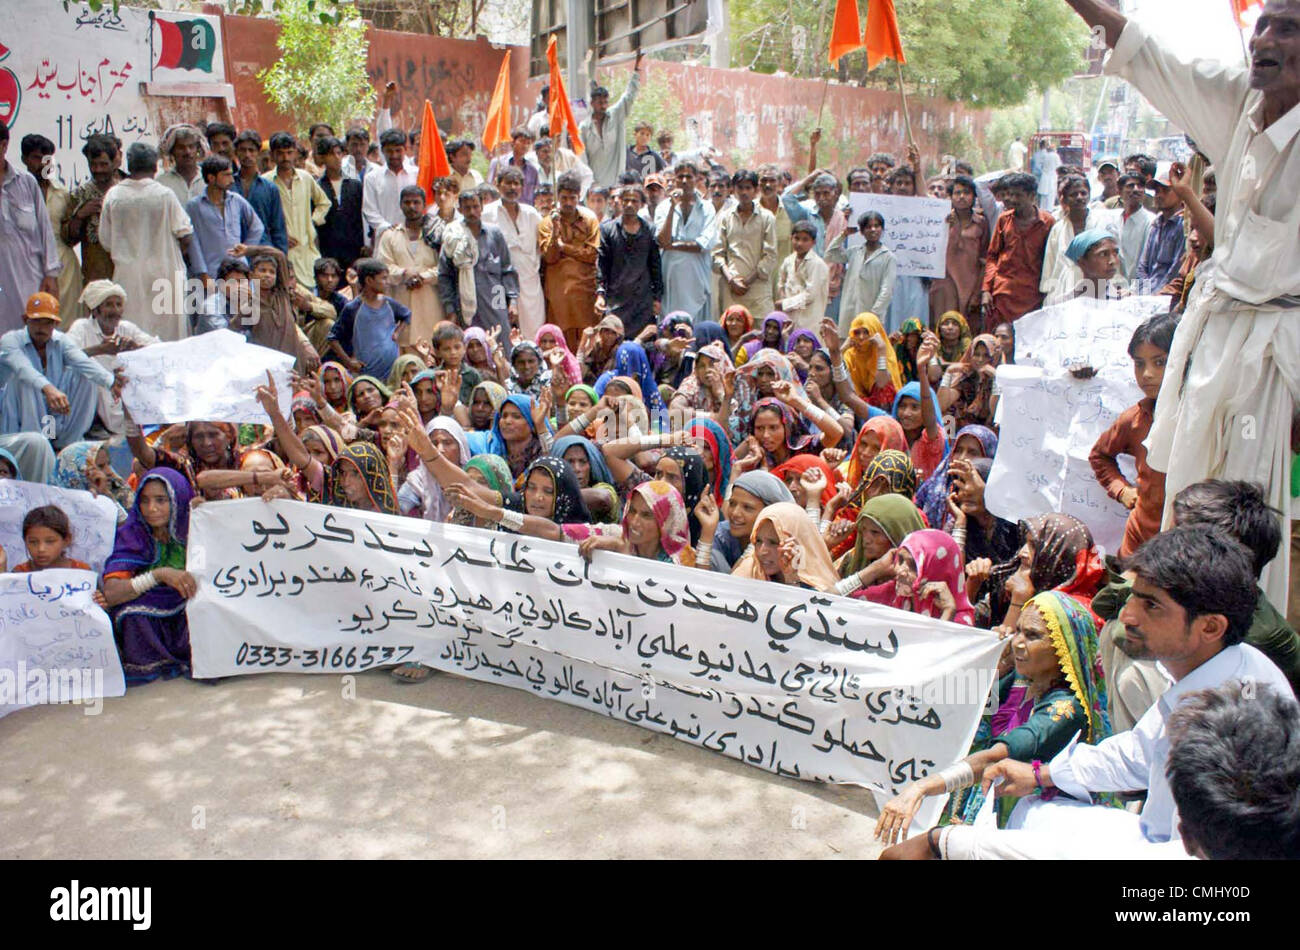 Residents of Aliabad chant slogans in favor of their  demands during a protest demonstration at Hyderabad press - Stock Image